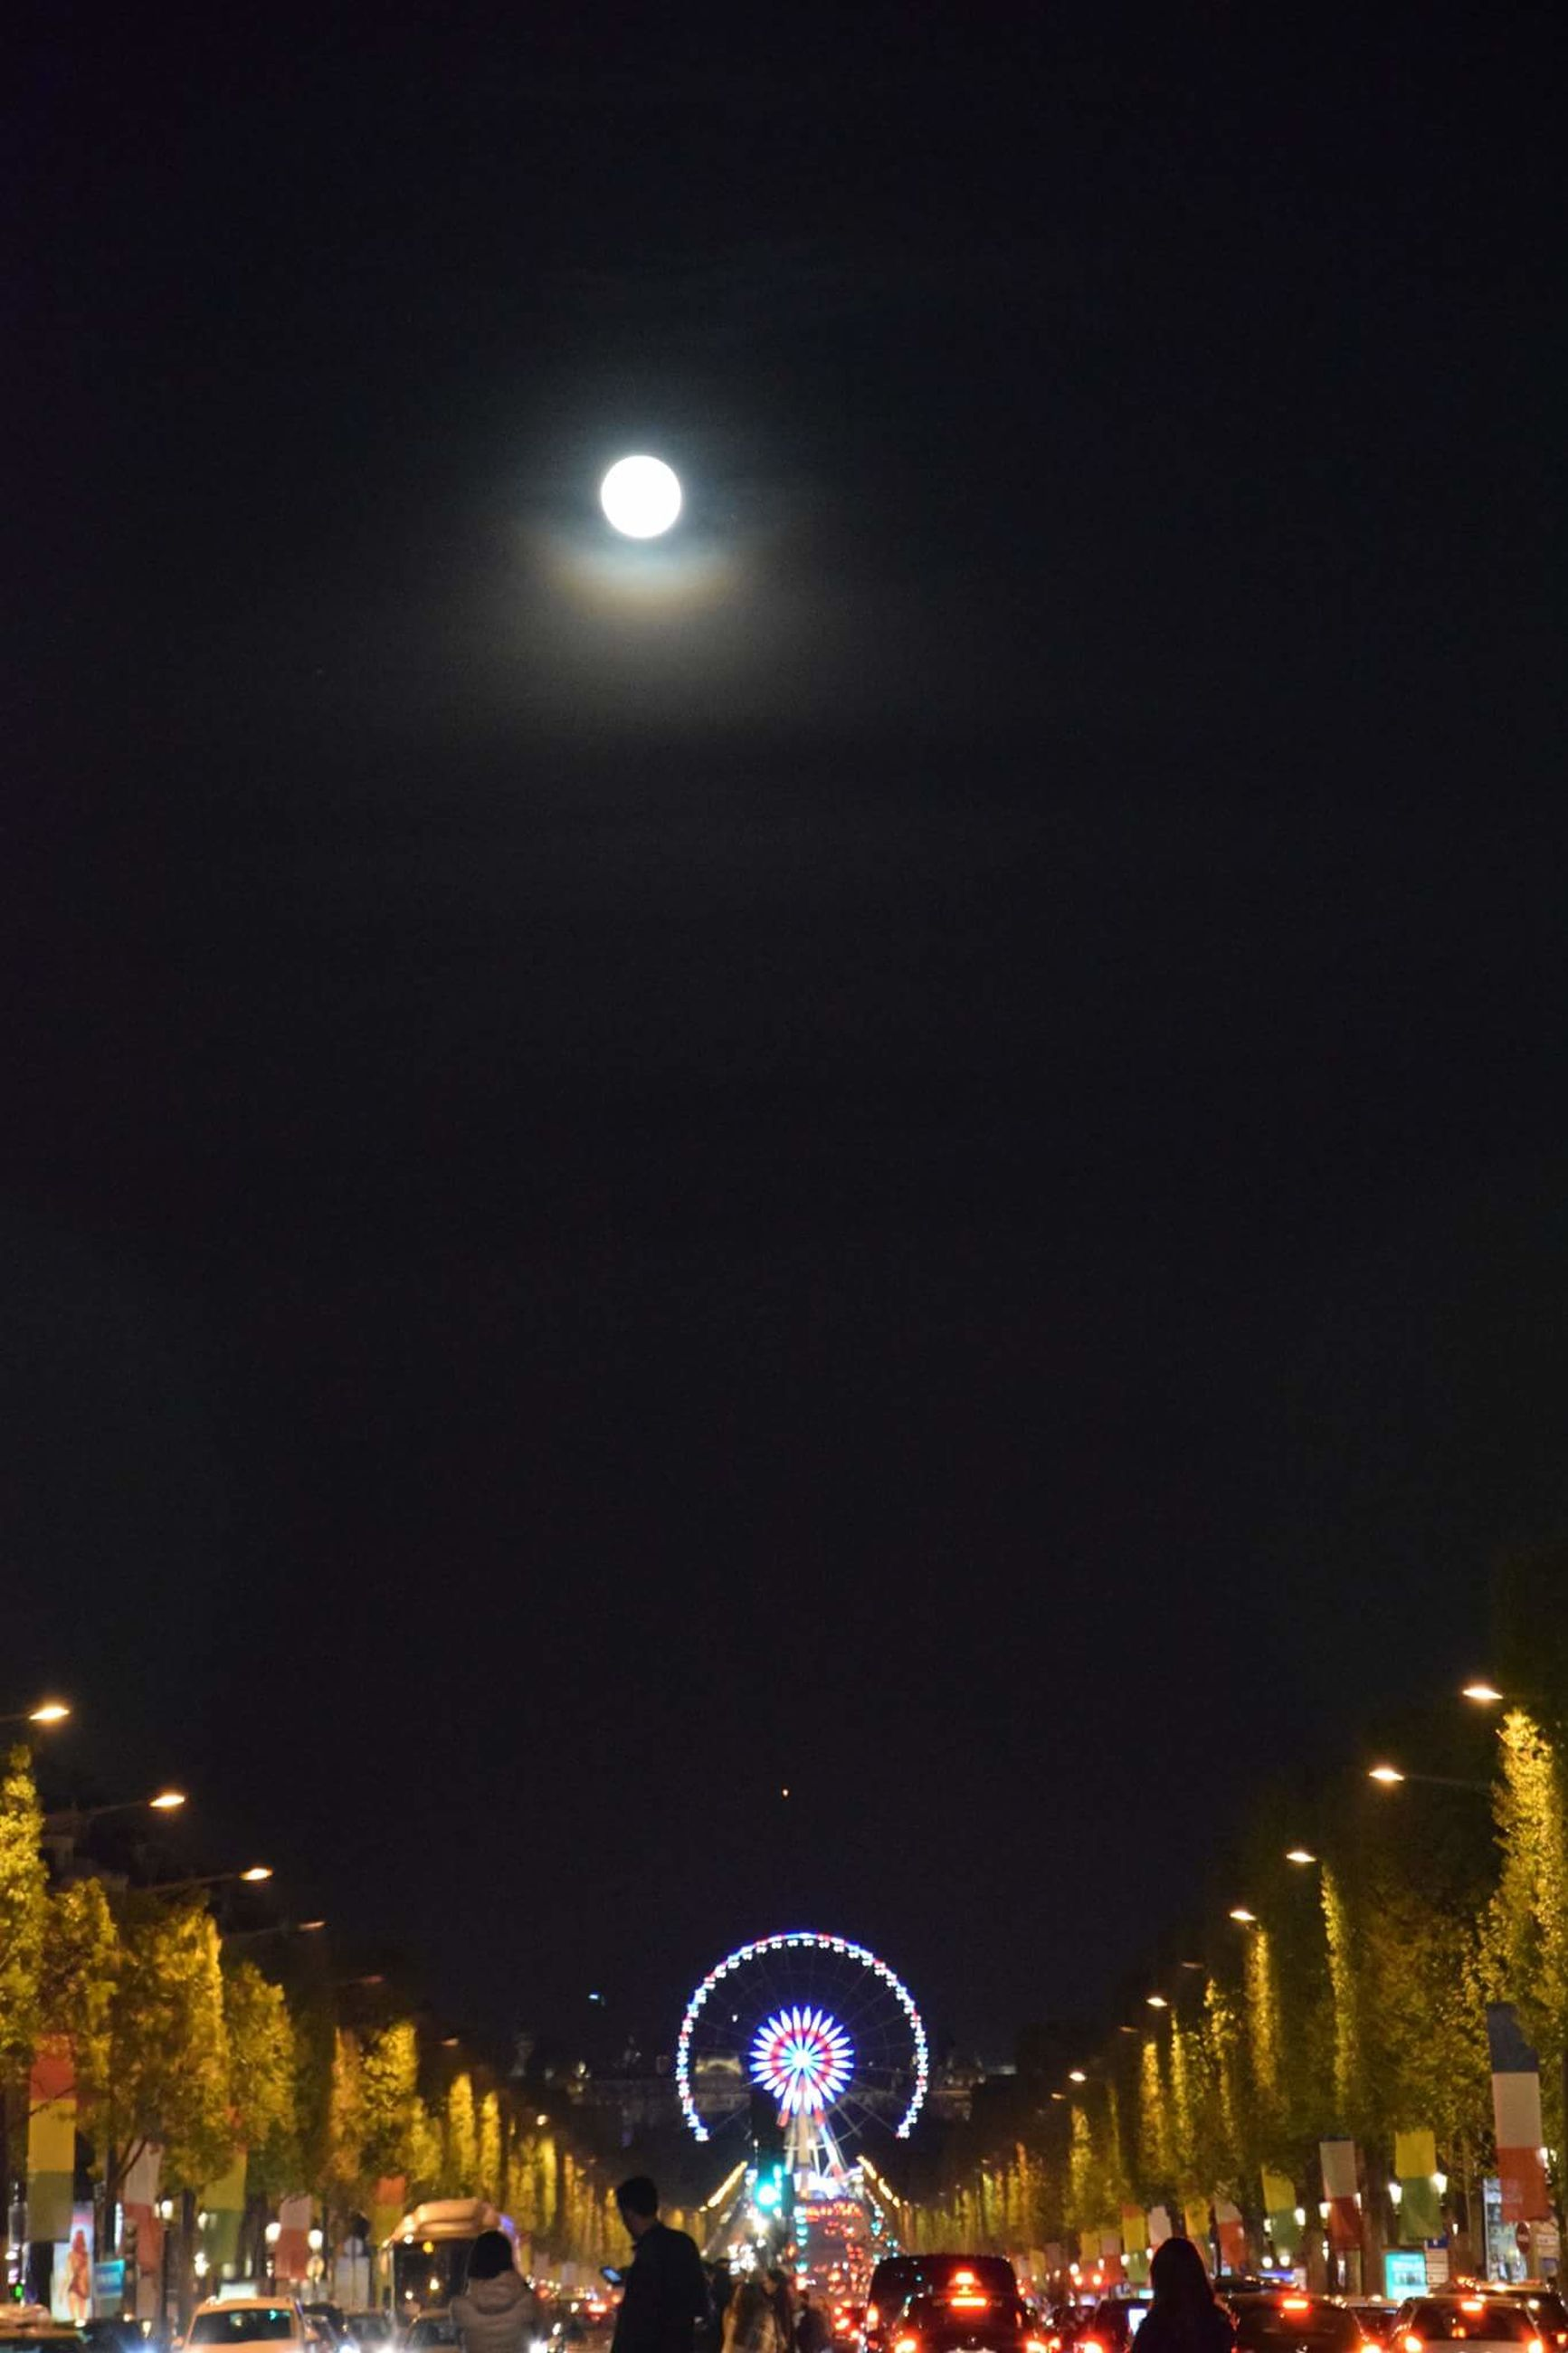 night, moon, illuminated, city, sky, architecture, building exterior, outdoors, astronomy, midnight, no people, star - space